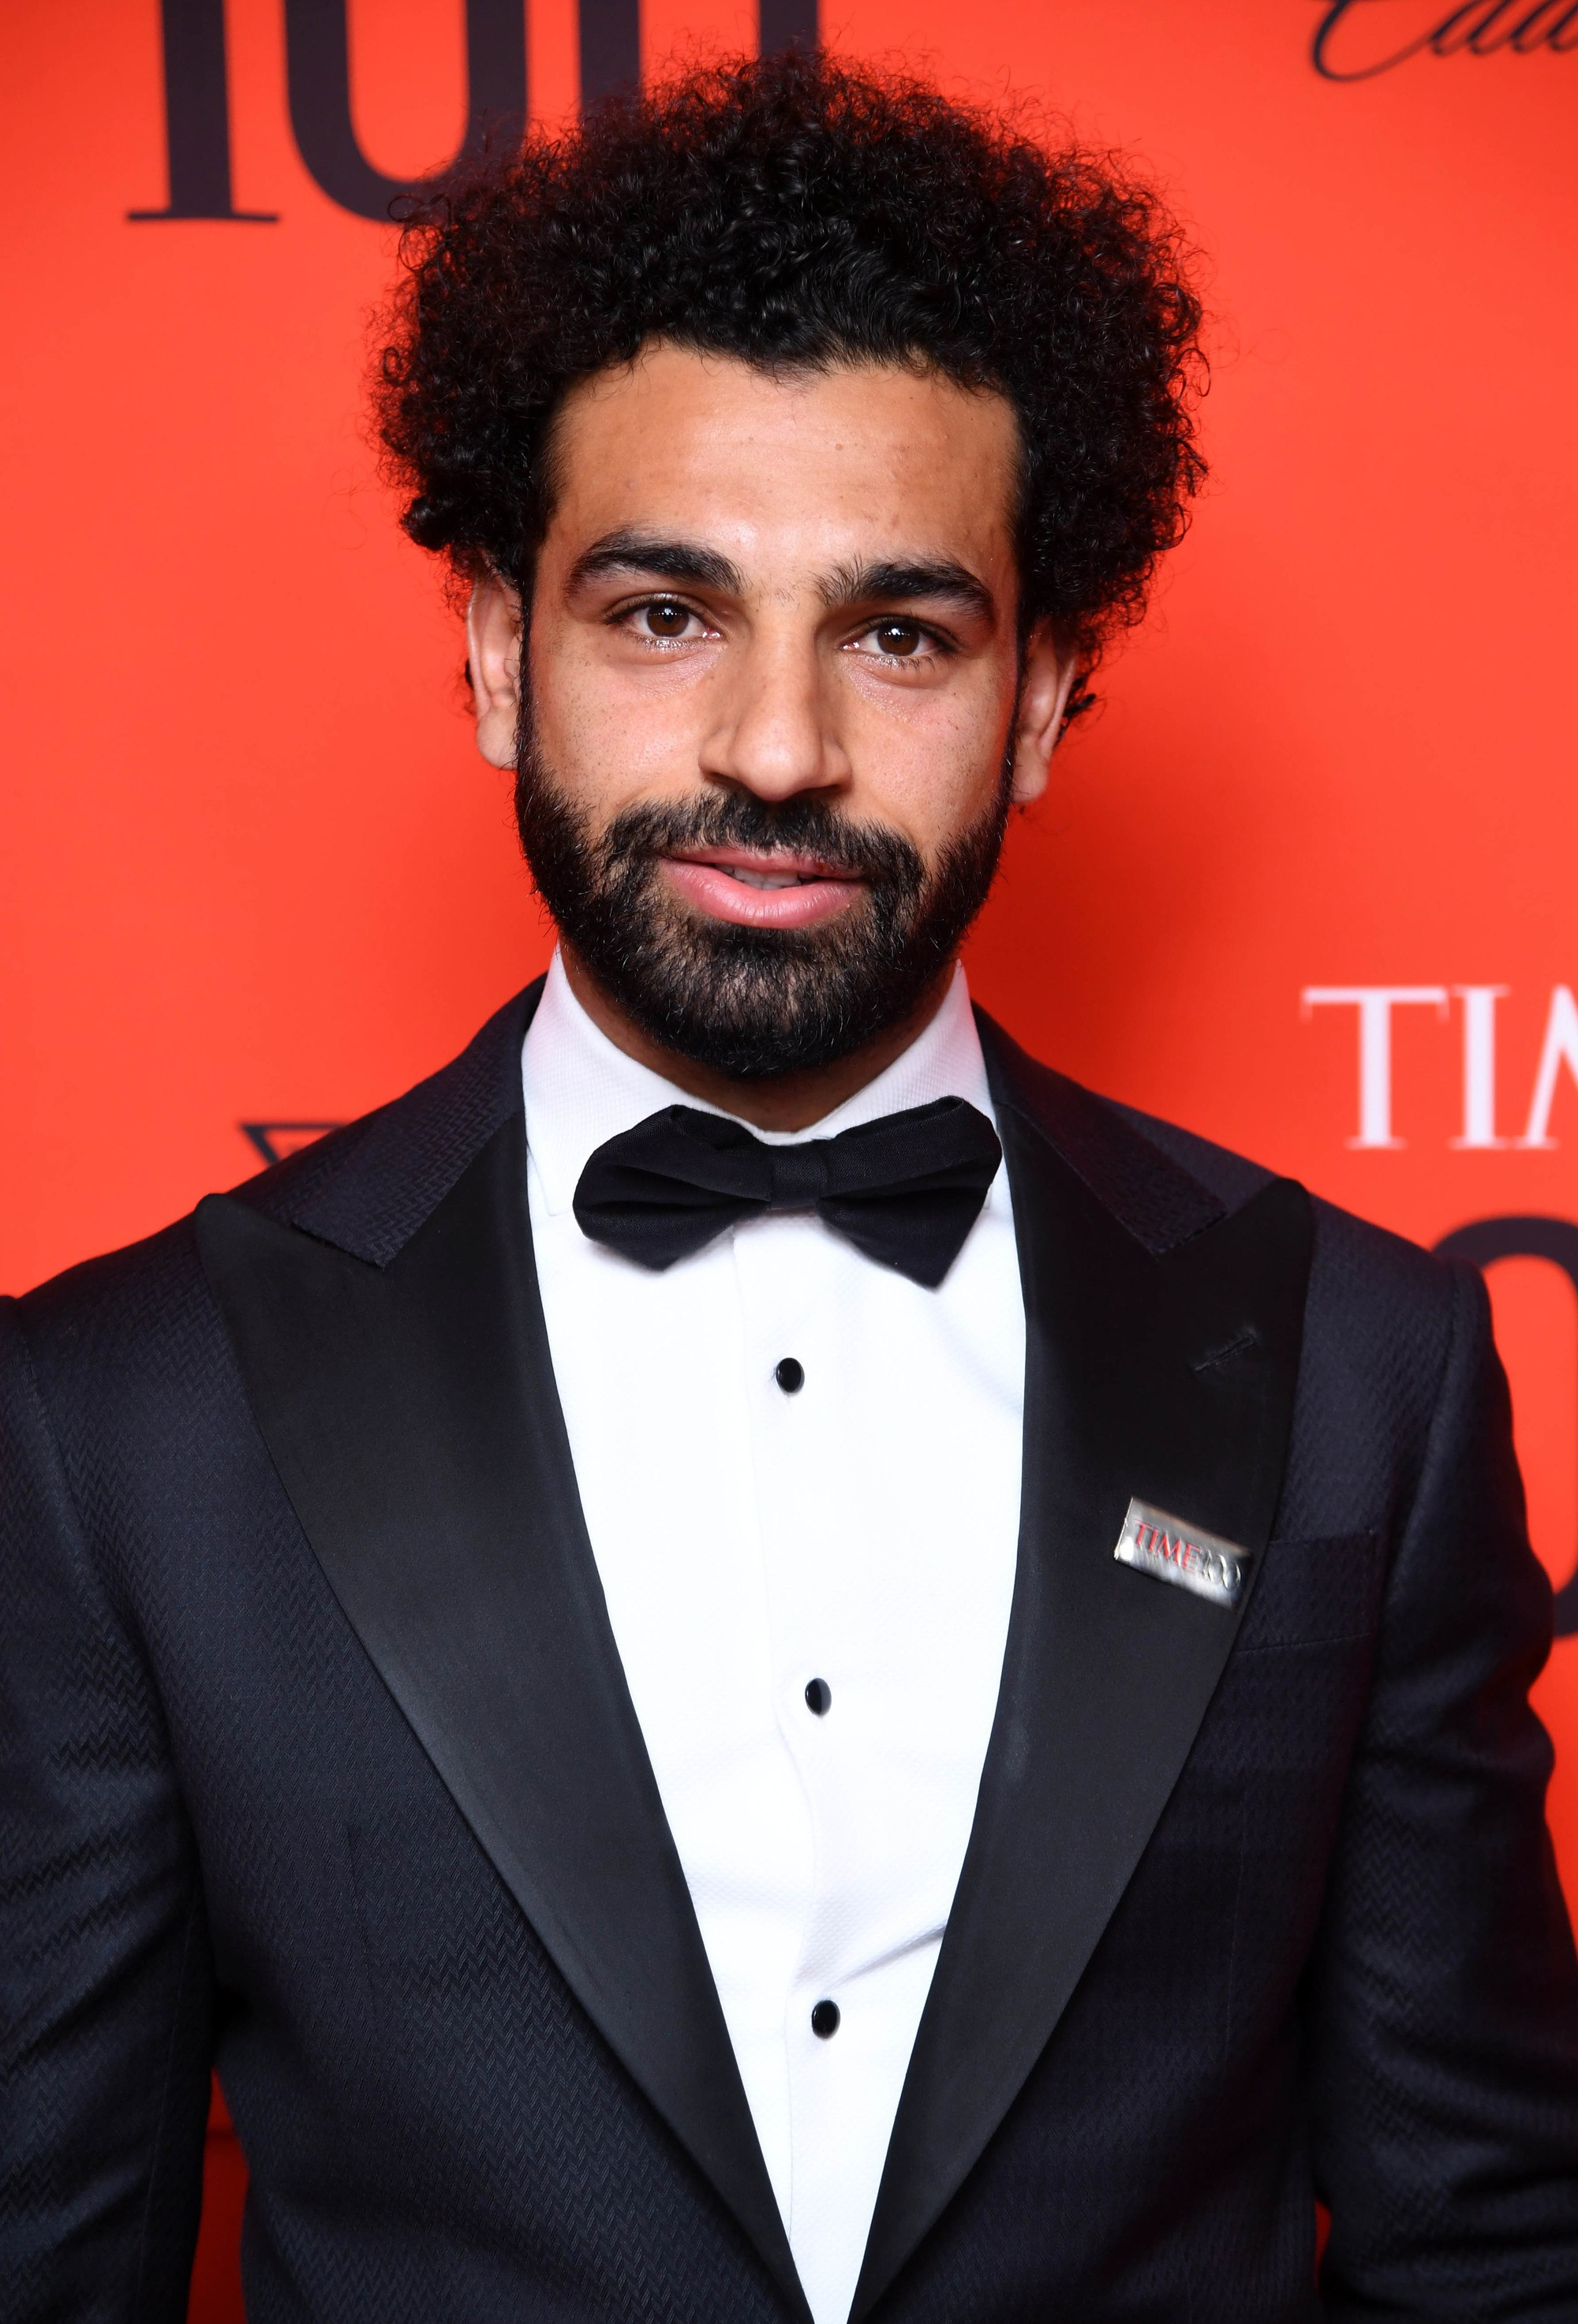 Football hairstyles: Mohamed Salah with naturally curly afro hair wearing a smart suit with bow tie.